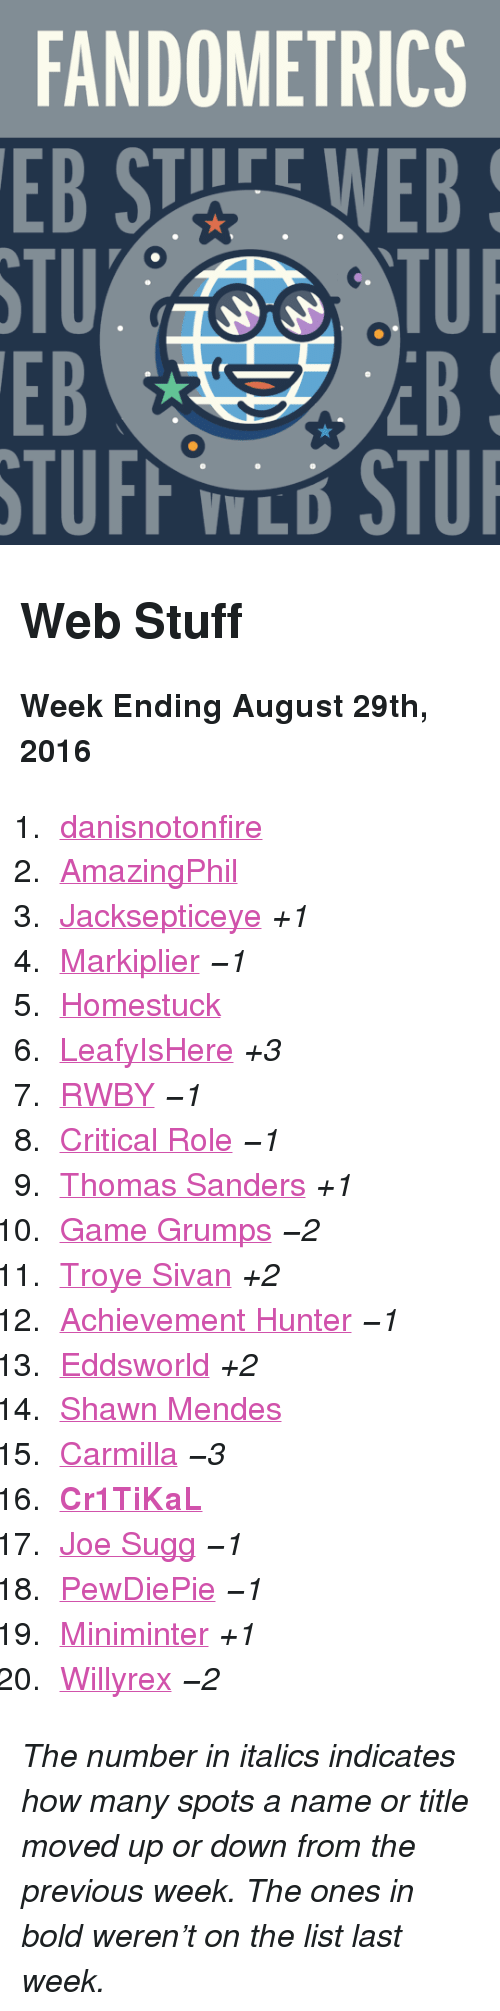 "leafyishere: FANDOMETRICS  EB STUFE WEB  STU  EB  TUI  EB  V L <h2>Web Stuff</h2><p><b>Week Ending August 29th, 2016</b></p><ol><li><a href=""http://www.tumblr.com/search/danisnotonfire"">danisnotonfire</a></li>  <li><a href=""http://www.tumblr.com/search/amazingphil"">AmazingPhil</a></li>  <li><a href=""http://www.tumblr.com/search/jacksepticeye"">Jacksepticeye</a> <i>+1</i></li>  <li><a href=""http://www.tumblr.com/search/markiplier"">Markiplier</a> <i><i><i>−1</i></i></i></li>  <li><a href=""http://www.tumblr.com/search/homestuck"">Homestuck</a></li>  <li><a href=""http://www.tumblr.com/search/leafyishere"">LeafyIsHere</a> <i>+3</i></li>  <li><a href=""http://www.tumblr.com/search/rwby"">RWBY</a> <i><i><i>−1</i></i></i></li>  <li><a href=""http://www.tumblr.com/search/critical%20role"">Critical Role</a> <i><i><i>−1</i></i></i></li>  <li><a href=""http://www.tumblr.com/search/thomas%20sanders"">Thomas Sanders</a> <i>+1</i></li>  <li><a href=""http://www.tumblr.com/search/game%20grumps"">Game Grumps</a> <i><i><i>−2</i></i></i></li>  <li><a href=""http://www.tumblr.com/search/troye%20sivan"">Troye Sivan</a> <i>+2</i></li>  <li><a href=""http://www.tumblr.com/search/achievement%20hunter"">Achievement Hunter</a> <i><i><i>−1</i></i></i></li>  <li><a href=""http://www.tumblr.com/search/eddsworld"">Eddsworld</a> <i>+2</i></li>  <li><a href=""http://www.tumblr.com/search/shawn%20mendes"">Shawn Mendes</a></li>  <li><a href=""http://www.tumblr.com/search/carmilla"">Carmilla</a> <i><i><i>−3</i></i></i></li>  <li><a href=""http://www.tumblr.com/search/cr1tikal""><b>Cr1TiKaL</b></a></li>  <li><a href=""http://www.tumblr.com/search/joe%20sugg"">Joe Sugg</a> <i><i><i>−1</i></i></i></li>  <li><a href=""http://www.tumblr.com/search/pewdiepie"">PewDiePie</a> <i><i><i>−1</i></i></i></li>  <li><a href=""http://www.tumblr.com/search/miniminter"">Miniminter</a> <i>+1</i></li>  <li><a href=""http://www.tumblr.com/search/willyrex"">Willyrex</a> <i><i><i>−2</i></i></i></li></ol><p><i>The number in italics indicates how many spots a name or title moved up or down from the previous week. The ones in bold weren't on the list last week.</i></p>"